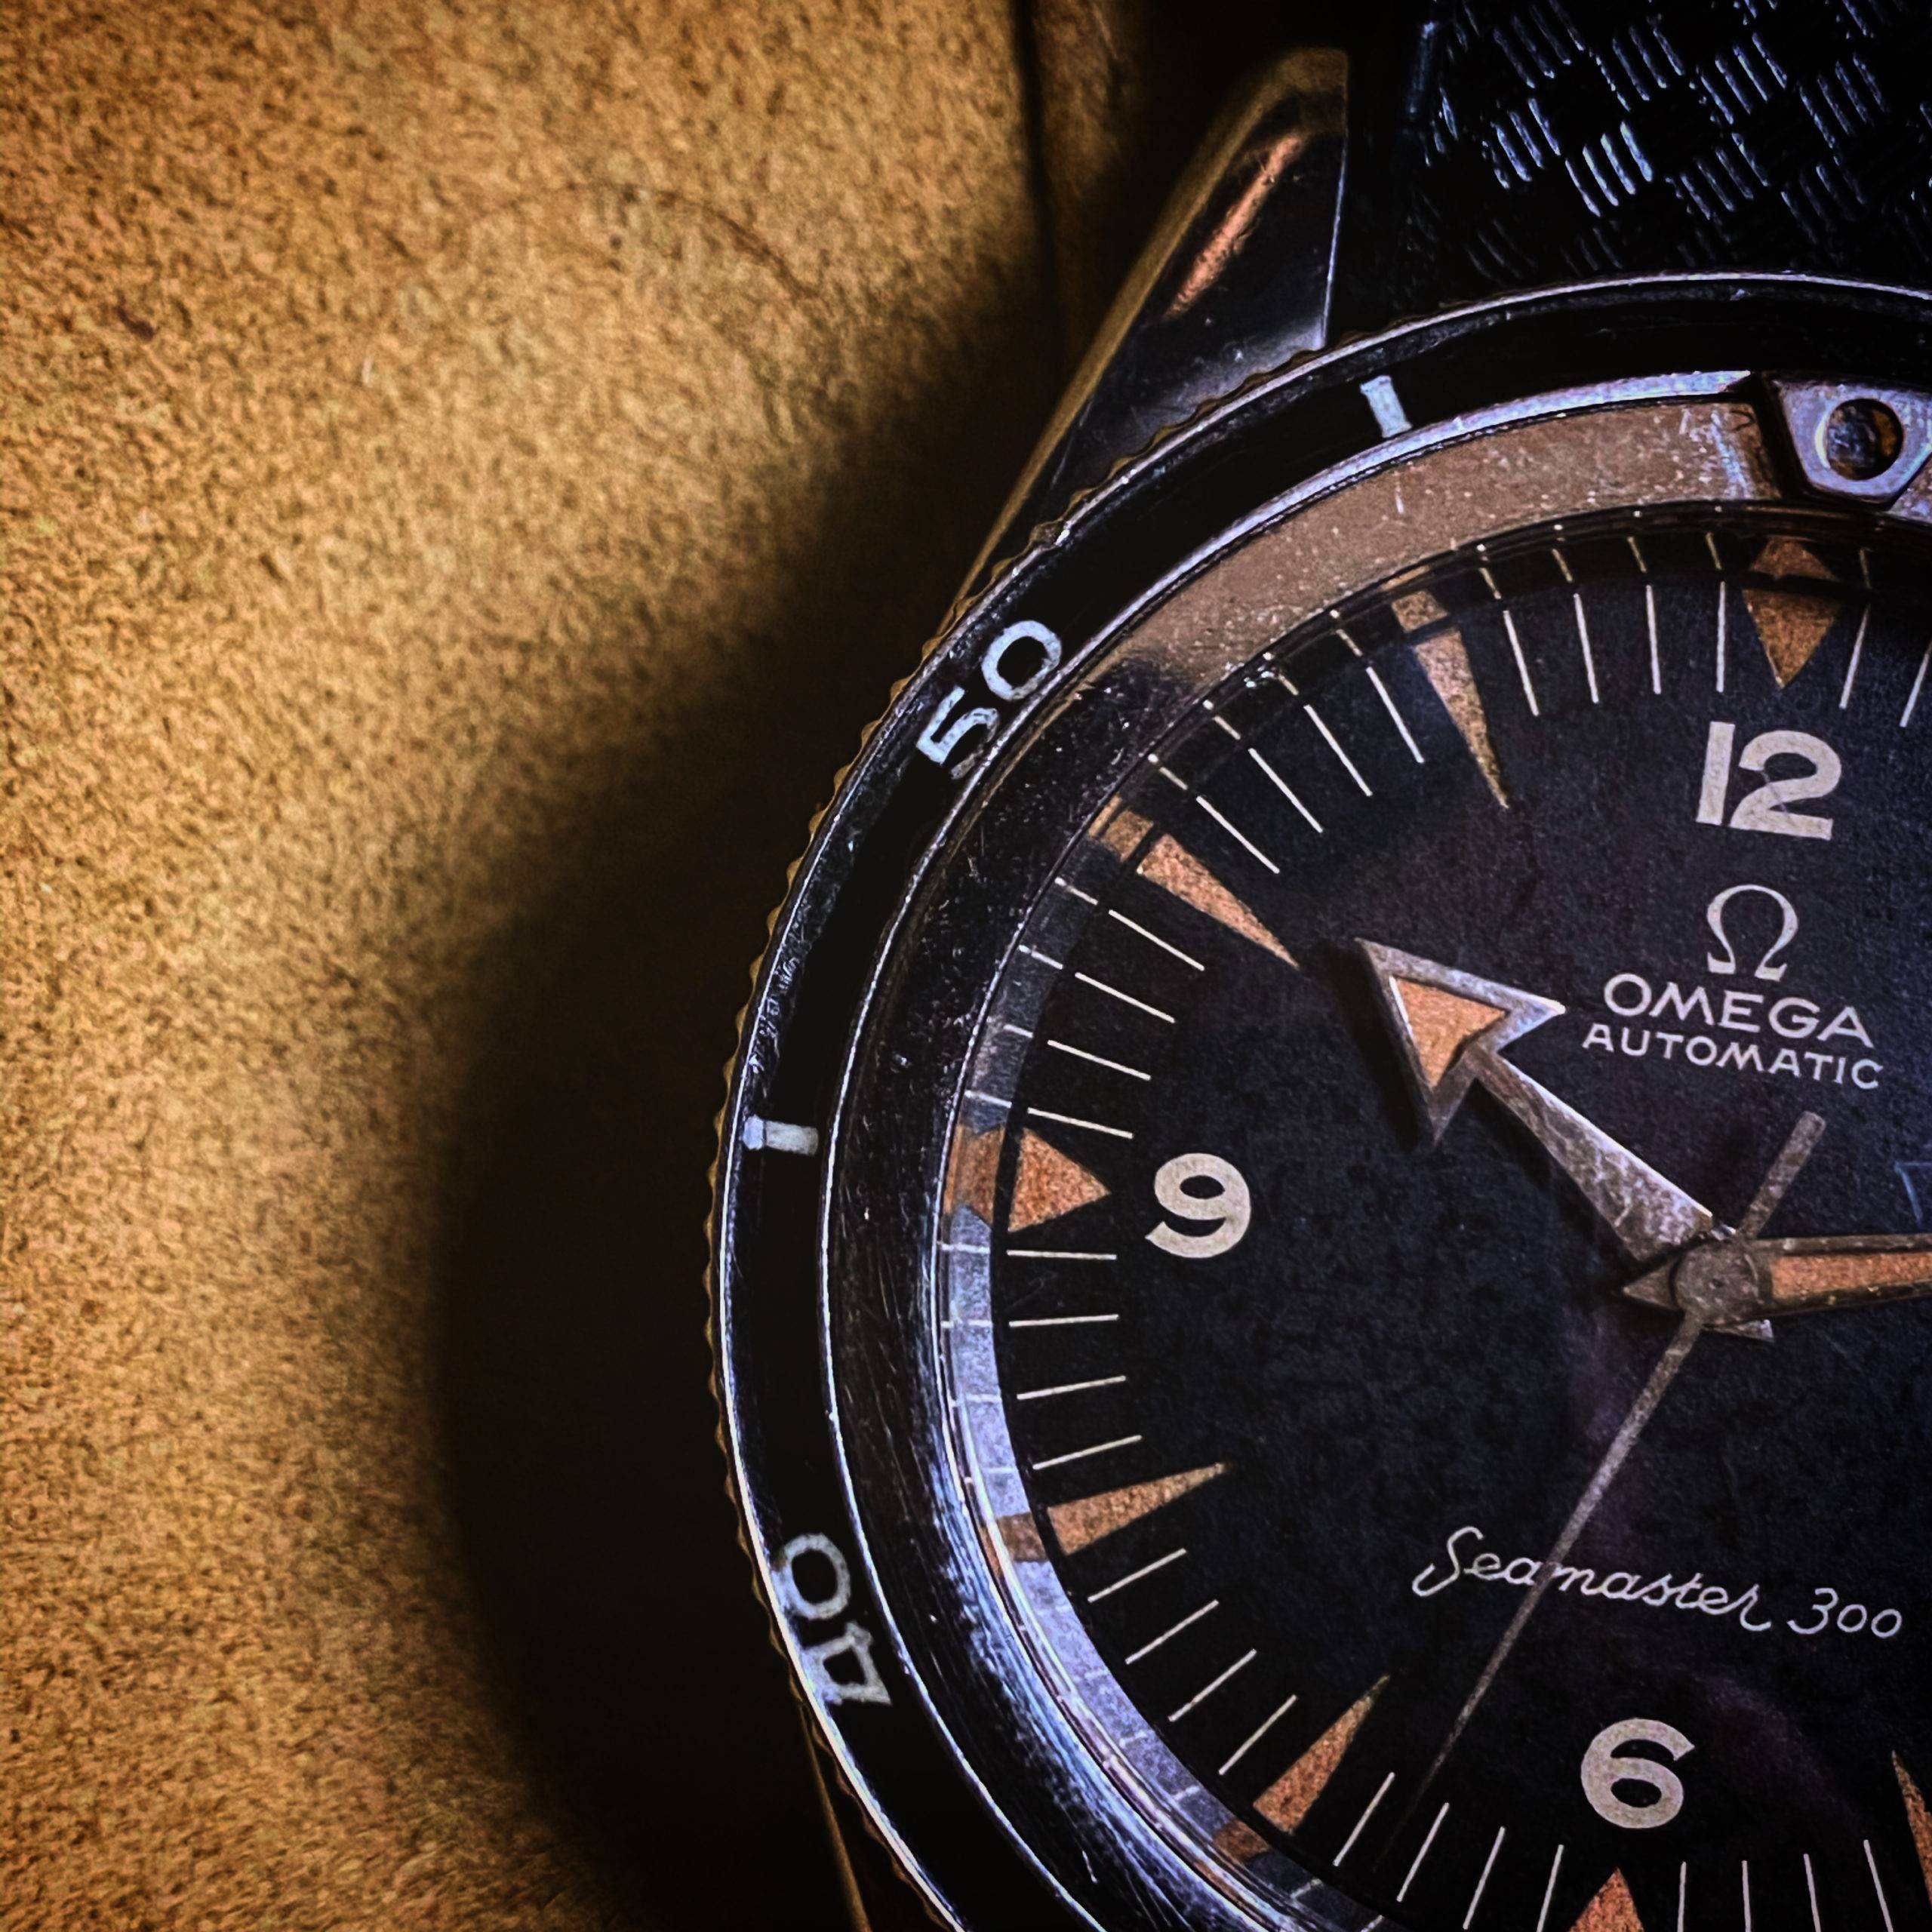 OMEGA SEAMASTER 300 'Broad Arrow'-7